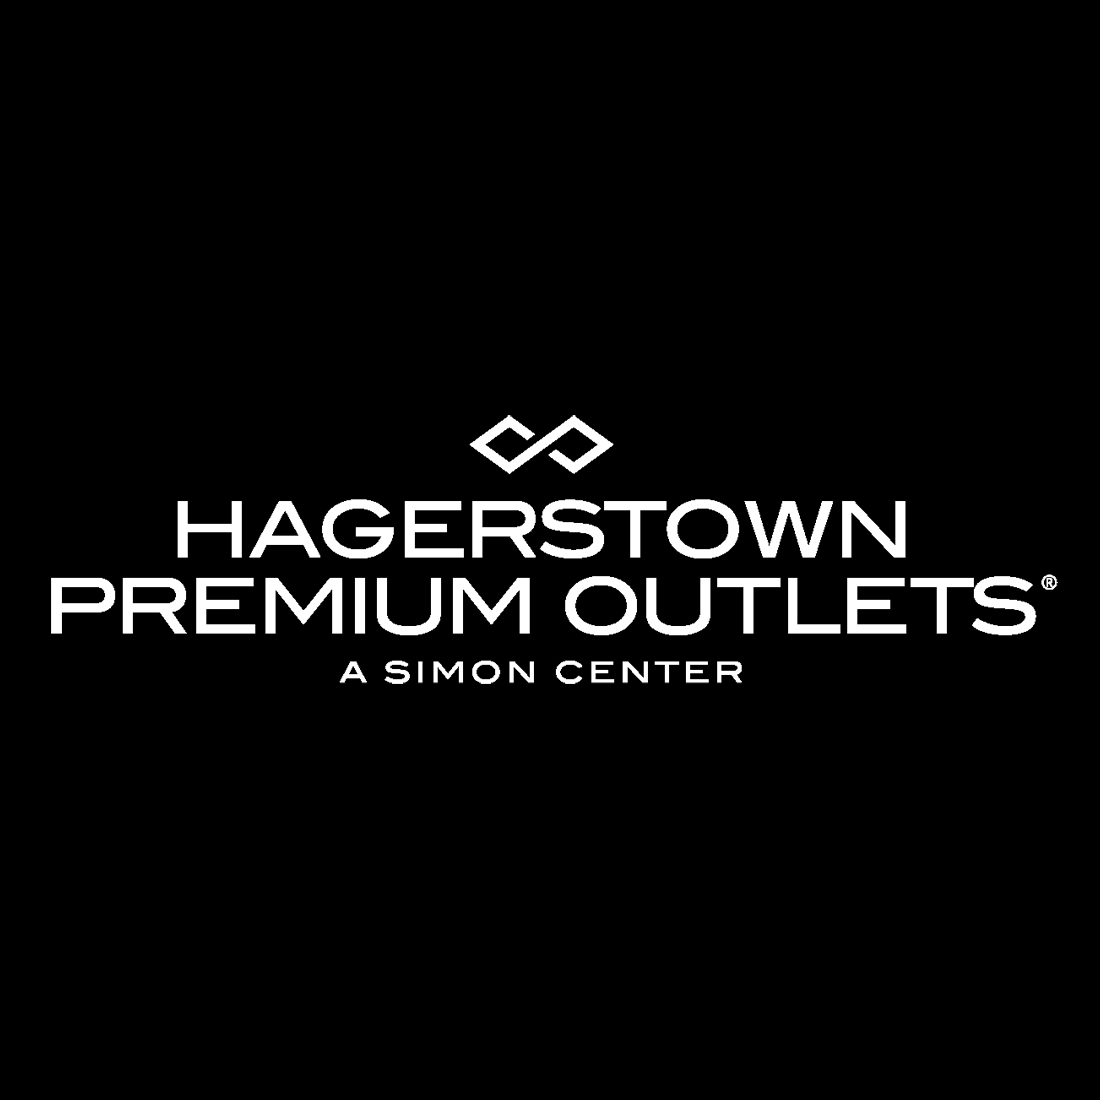 Hagerstown Premium Outlets - Hagerstown, MD - Factory Outlet Stores